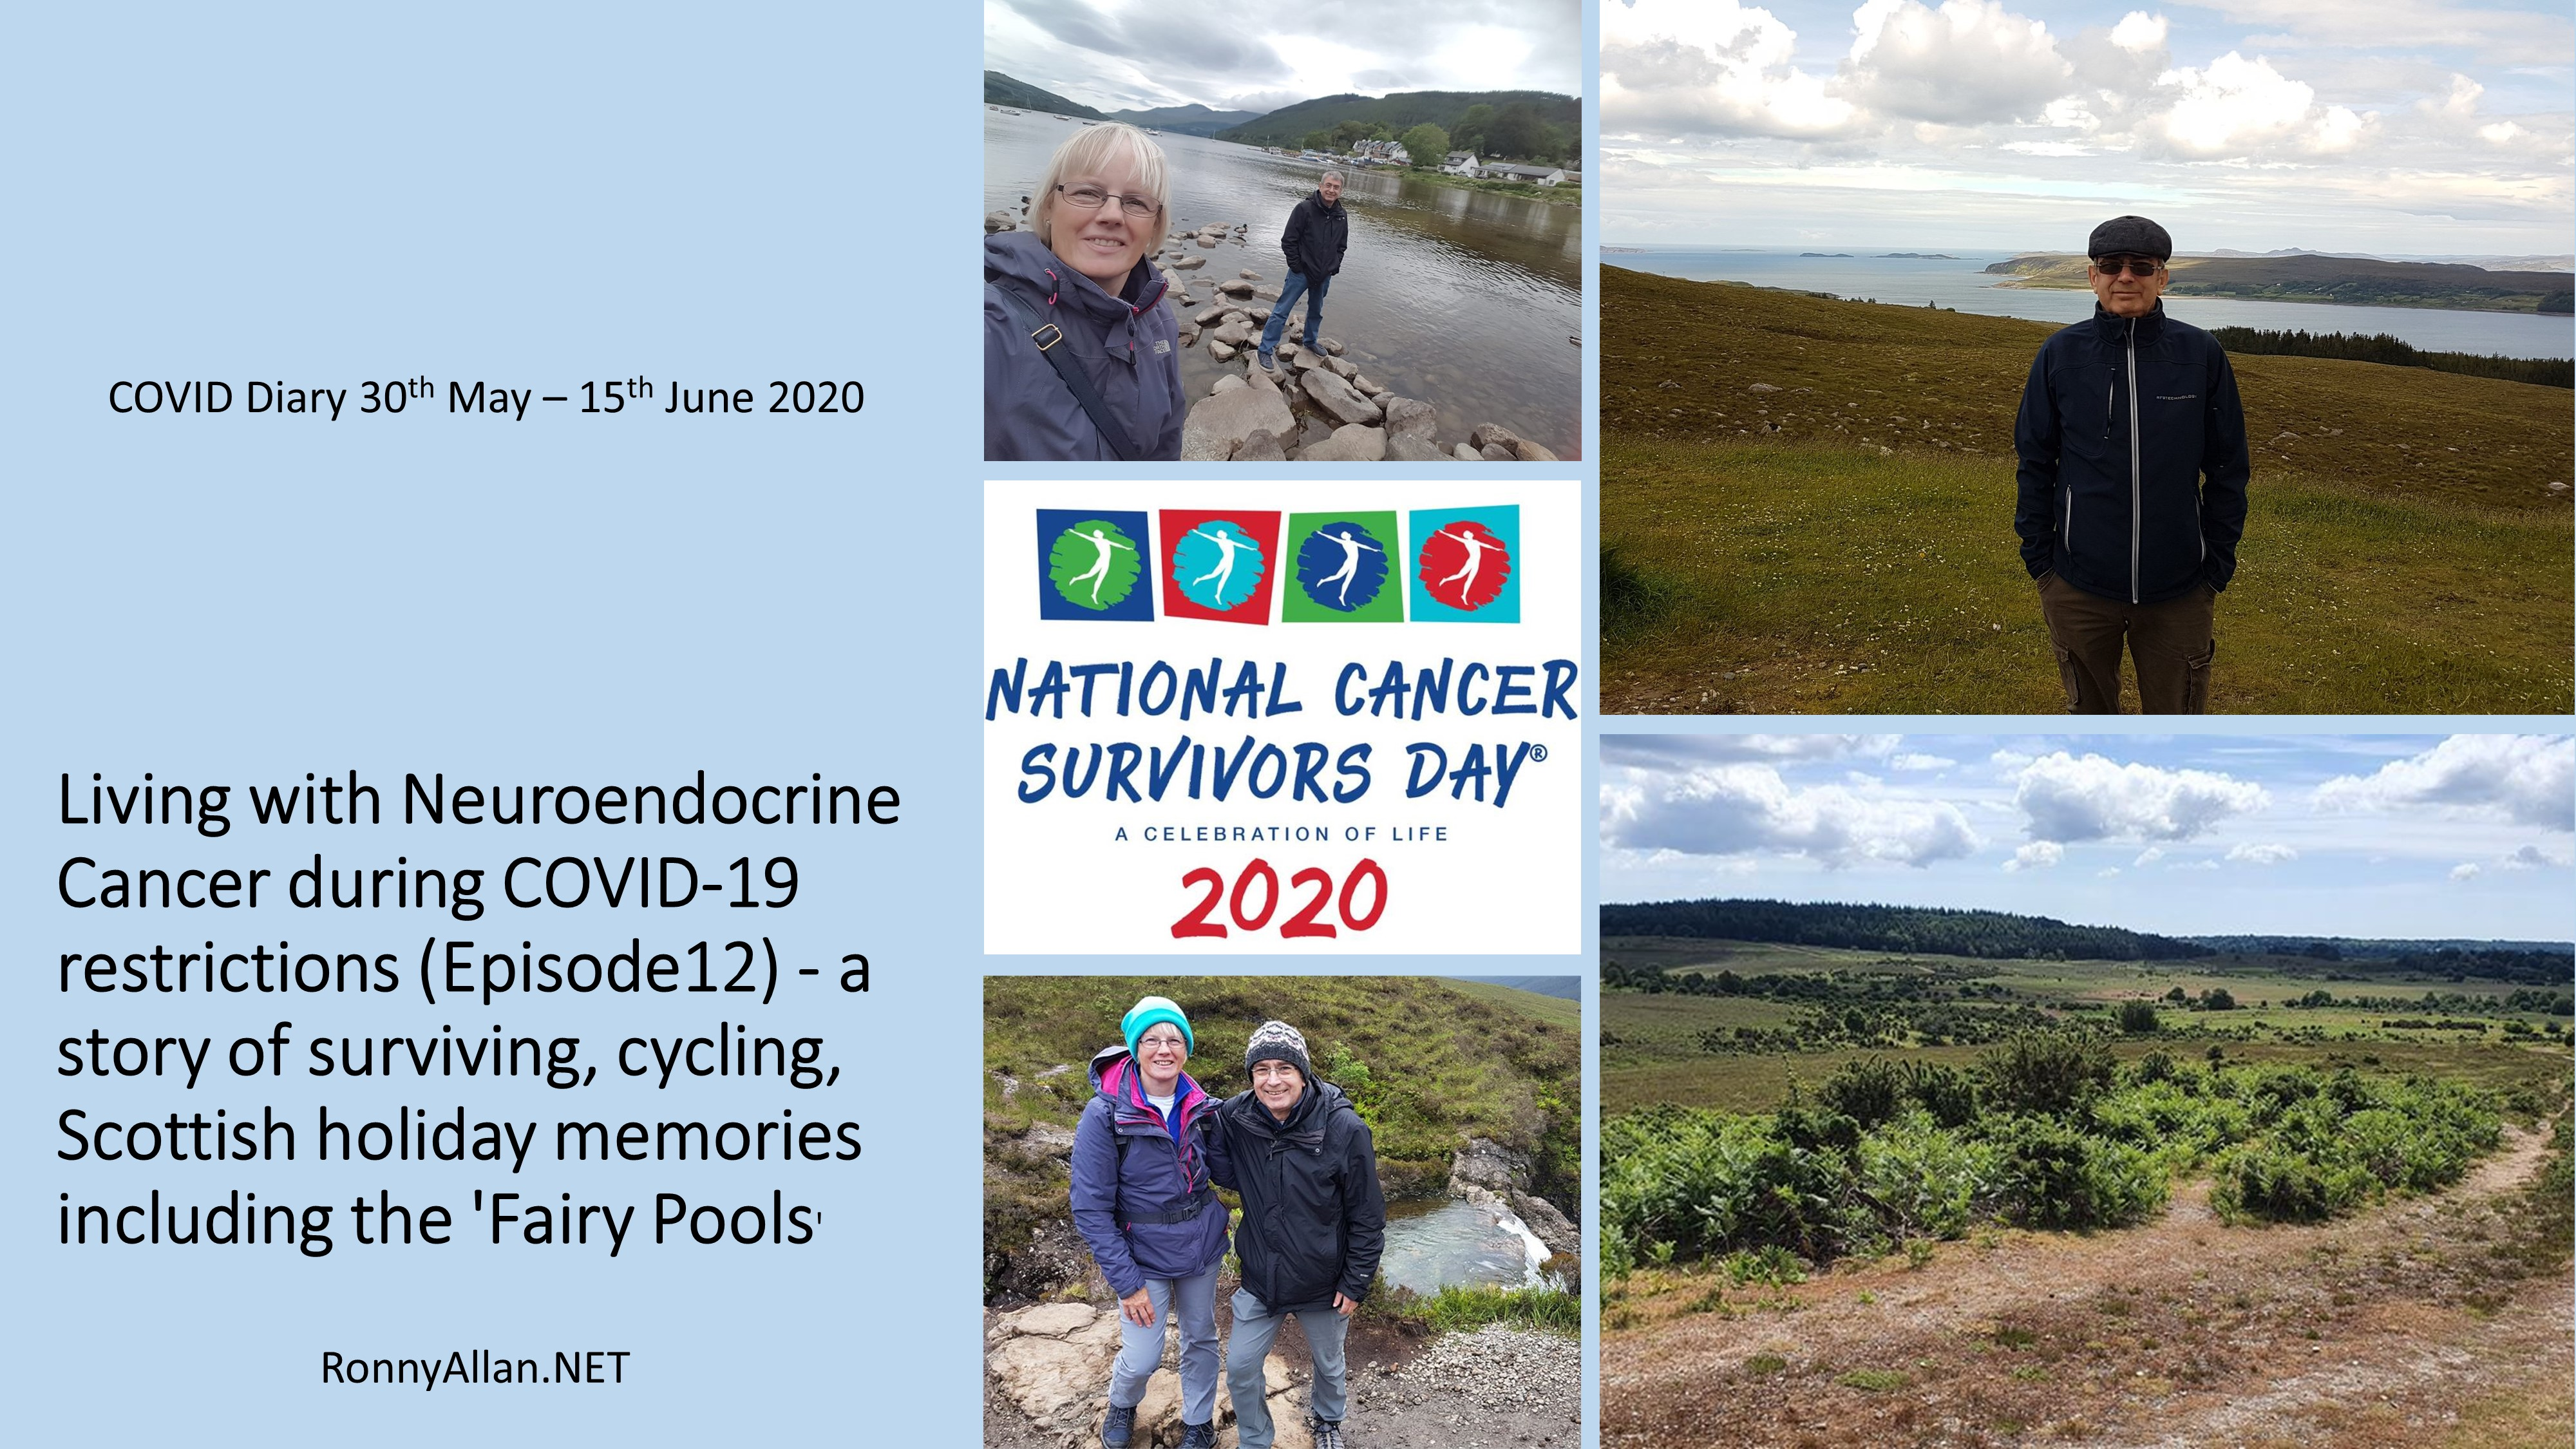 Living with Neuroendocrine Cancer during COVID-19 restrictions (Episode 12) – a story of surviving, cycling, Scottish holiday memories including the 'Fairy Pools'